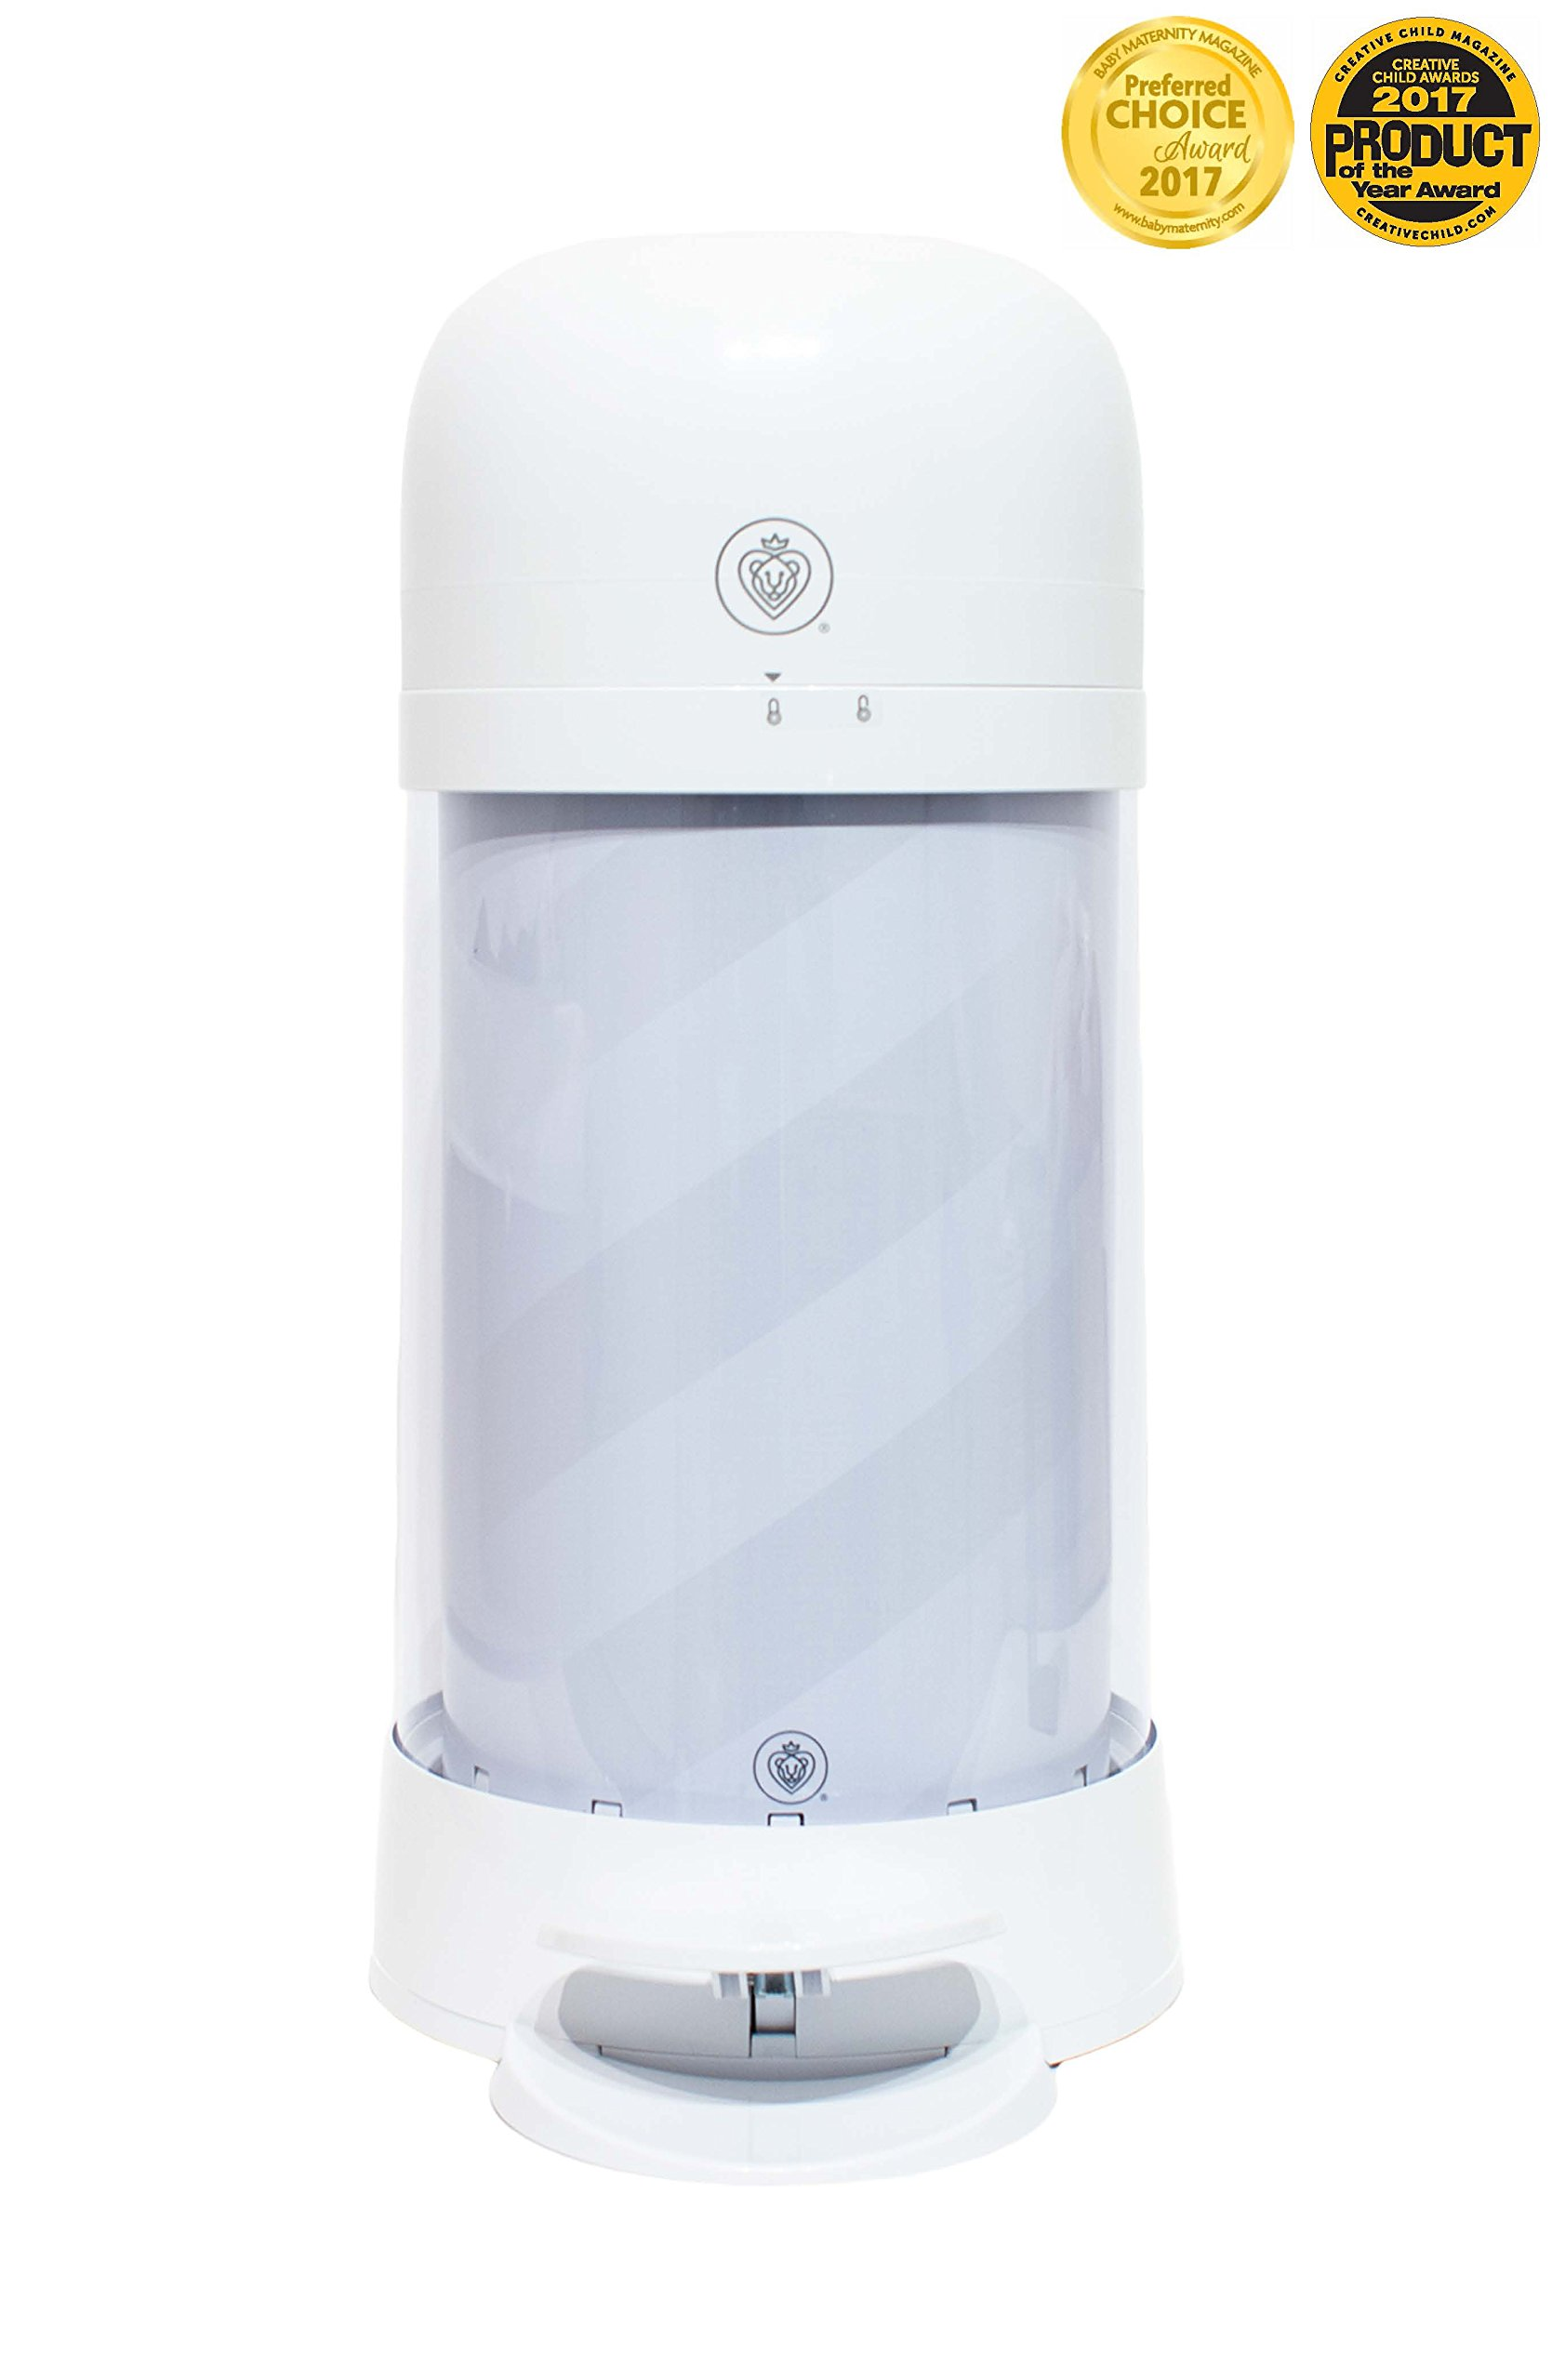 Prince Lionheart Twist'r Diaper Disposal System, White Candy Stripe by Prince Lionheart